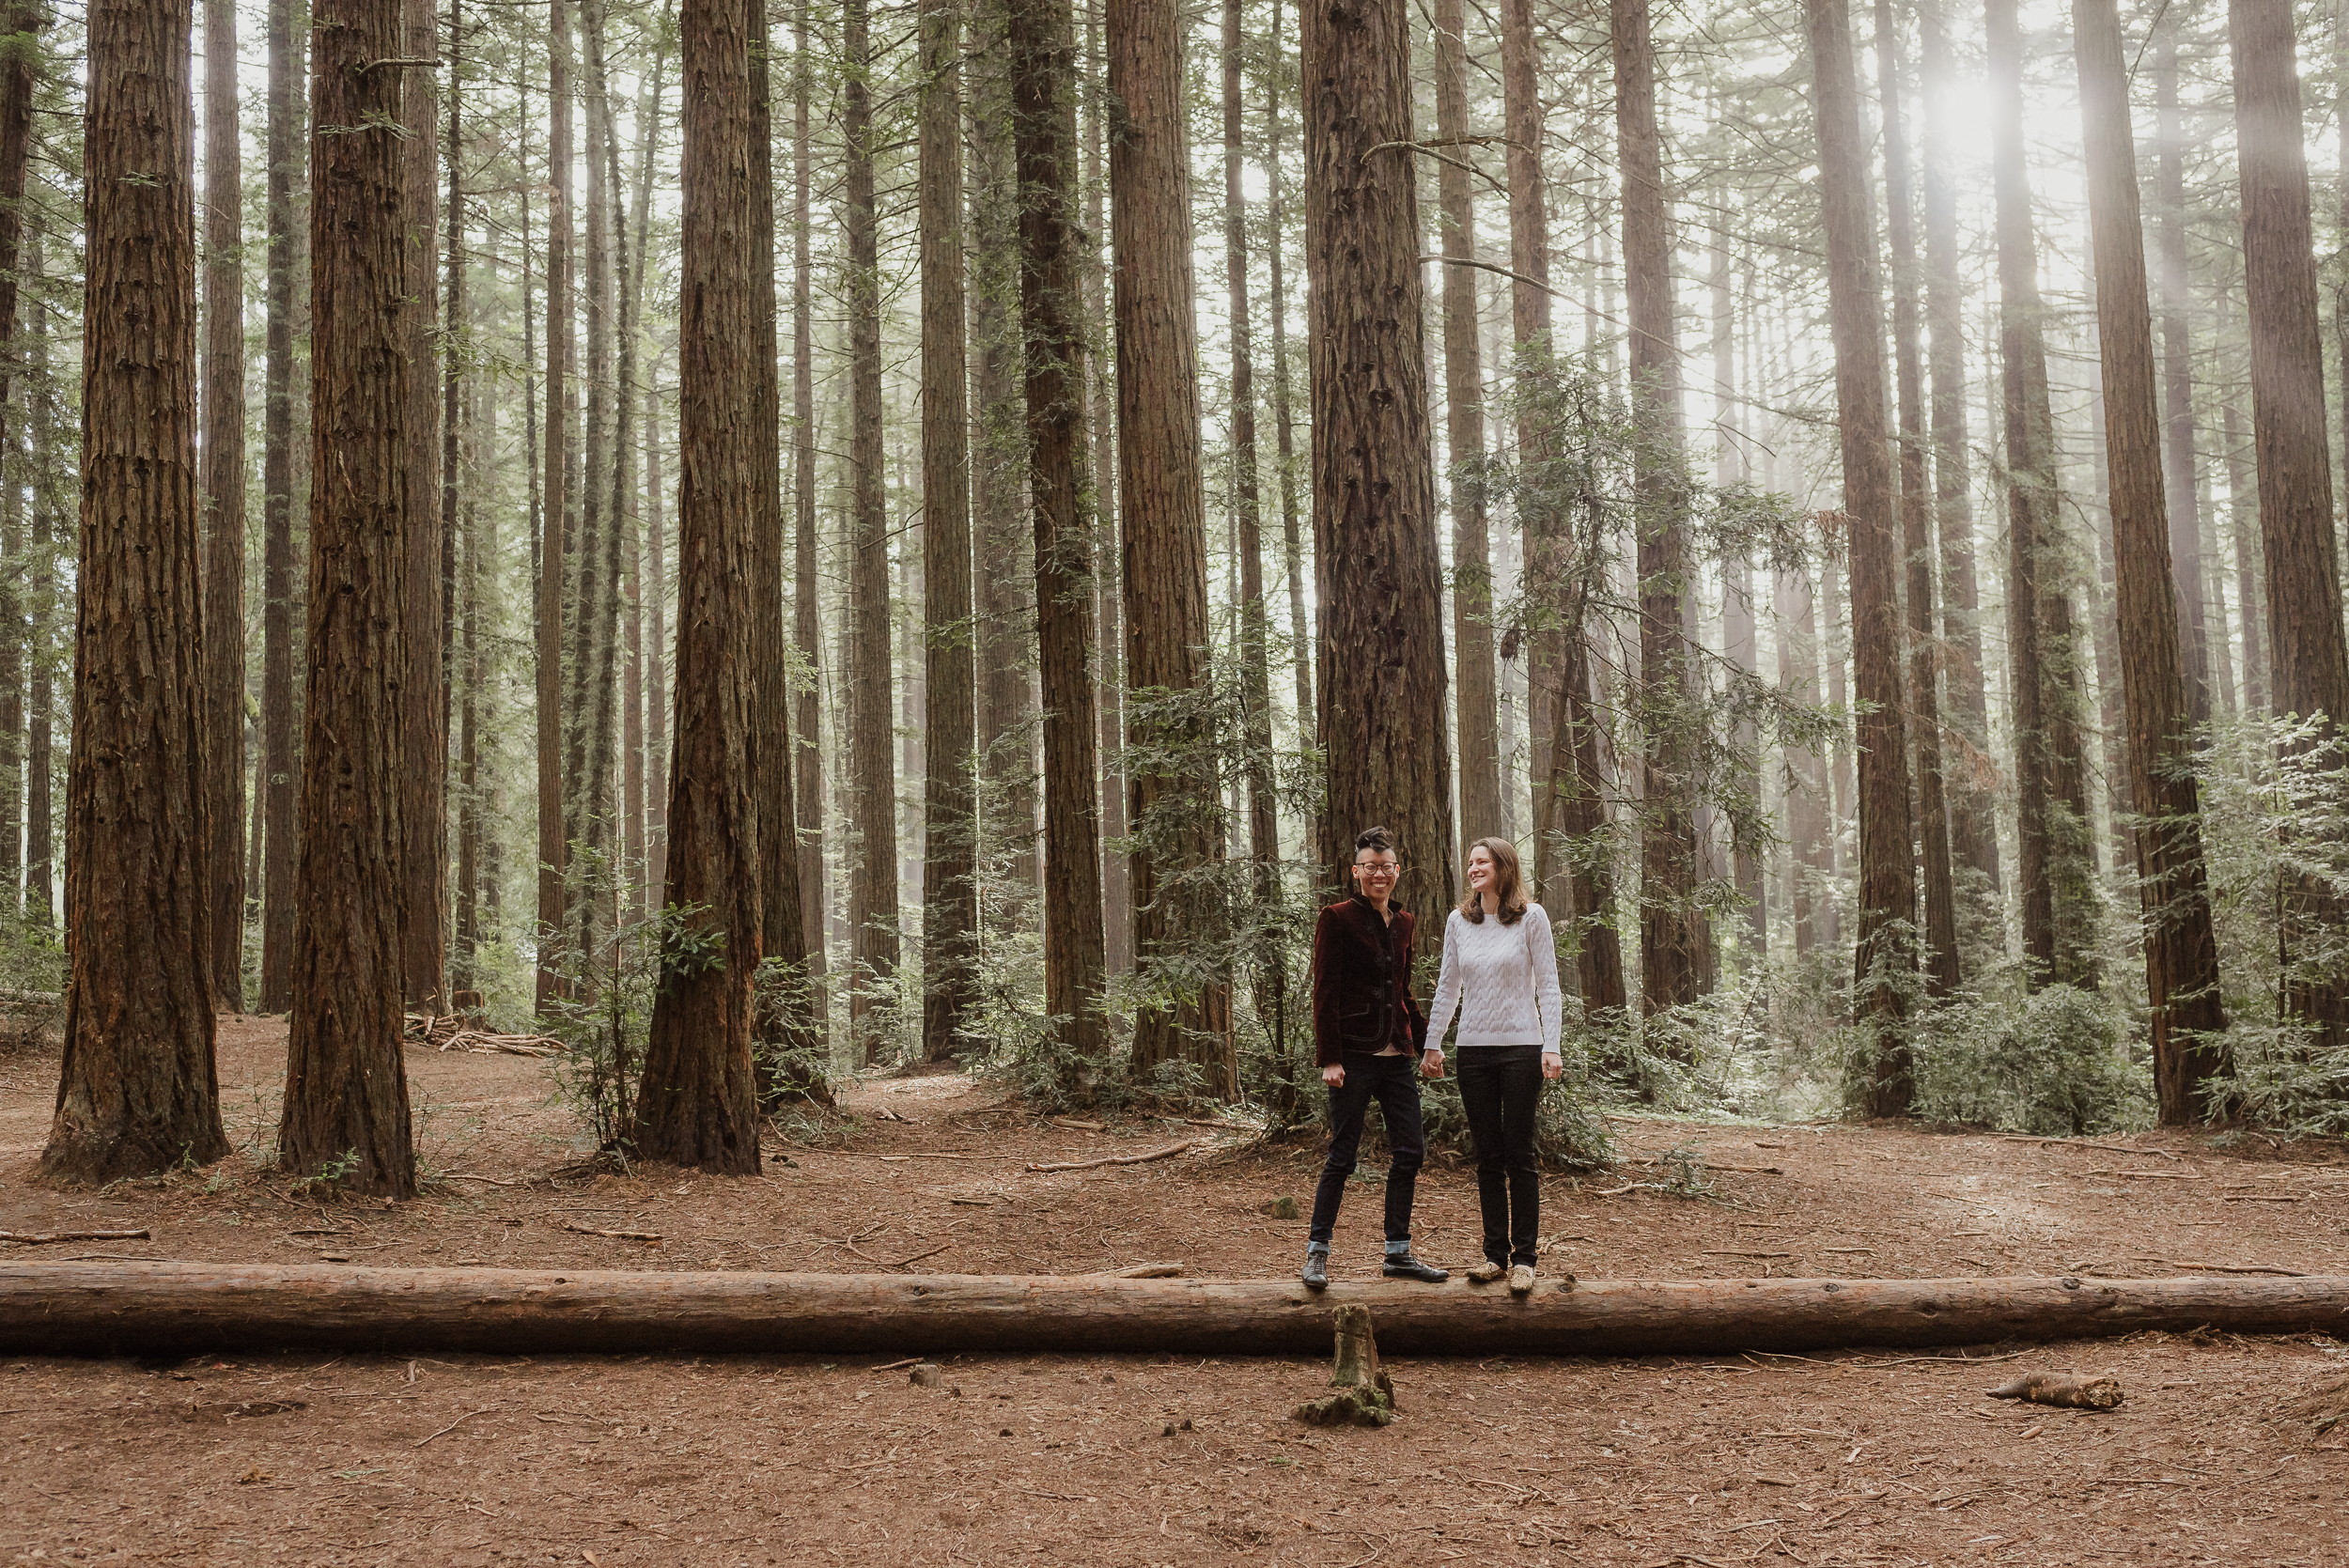 oakland-redwood-regional-park-engagement-session-vivianchen-014.jpg